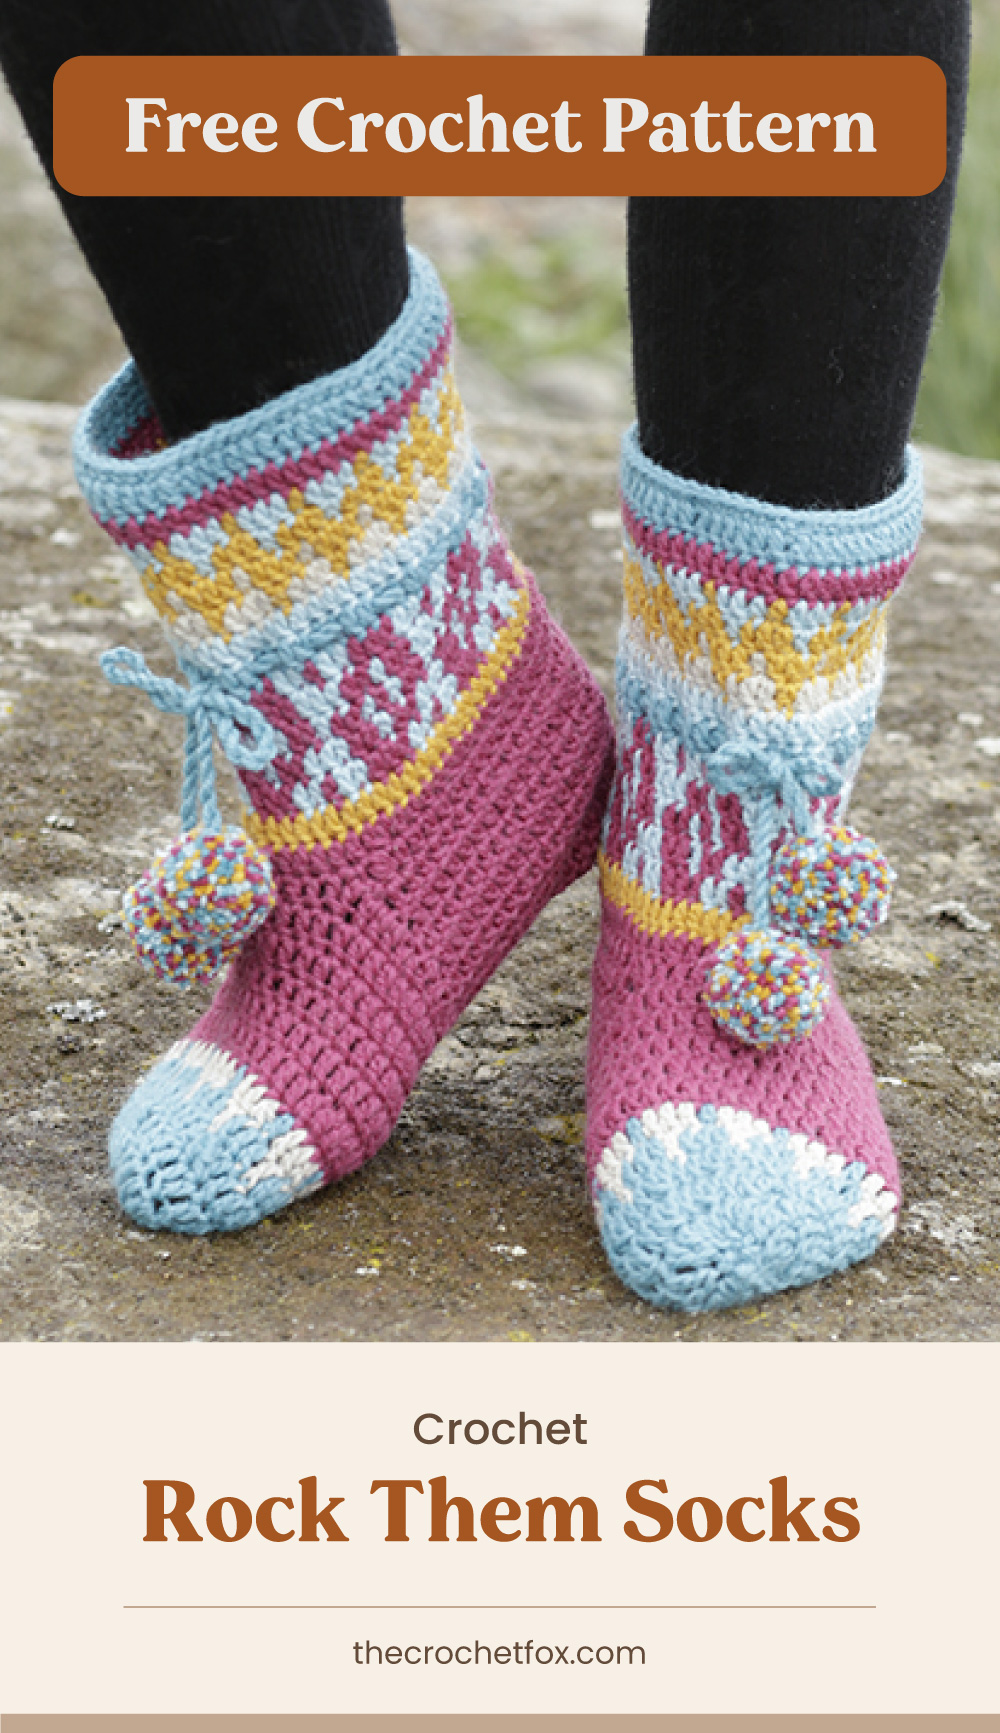 """Text area which says """"Free Crochet Pattern"""" next to close-up of a pair of feet wearing crocheted socks with colorful nordic patterns with pompom accents followed by another text area which says """"Crochet Rock Them Socks, thecrochetfox.com"""""""